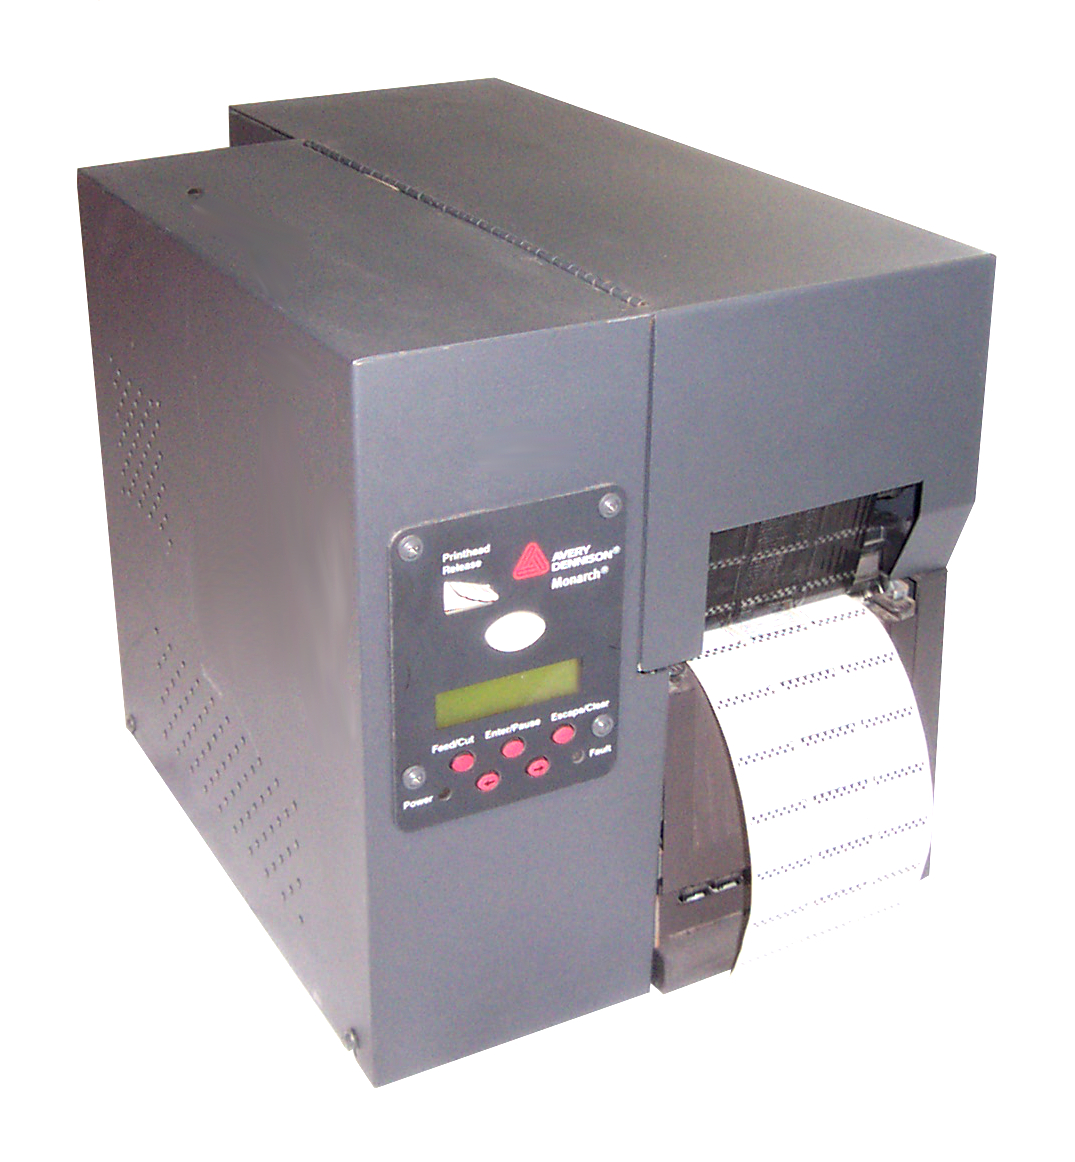 Custom Card Template avery label printer : Avery Dennison Monarch 9855 Thermal Barcode Label Printer ...